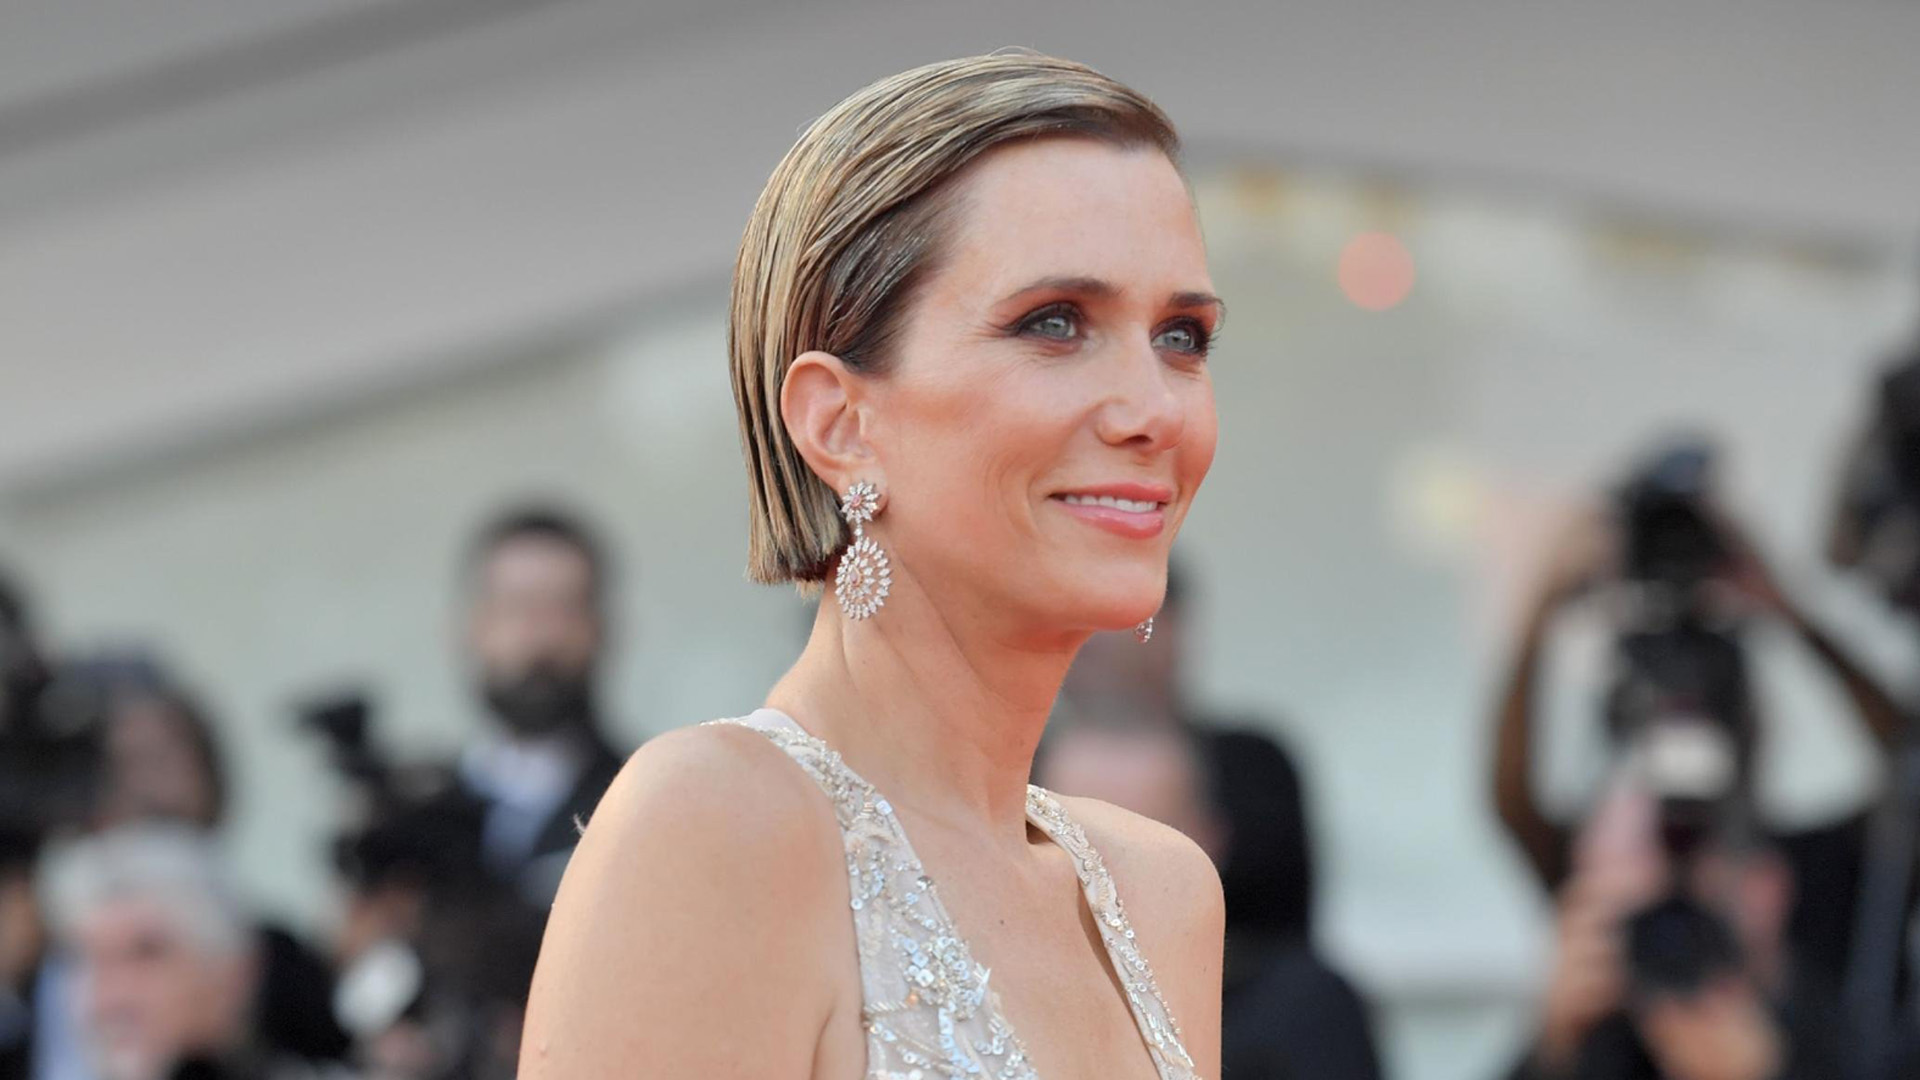 """A rep for Kristen Wiig confirmed to CNN that her new comedy with Annie Mumolo, """"Barb and Star Go to Vista Del Mar,"""" has pulled out of filming in the state in light of its """"heartbeat bill."""" (Credit: Tiziana Fabi/AFP/Getty Images)"""